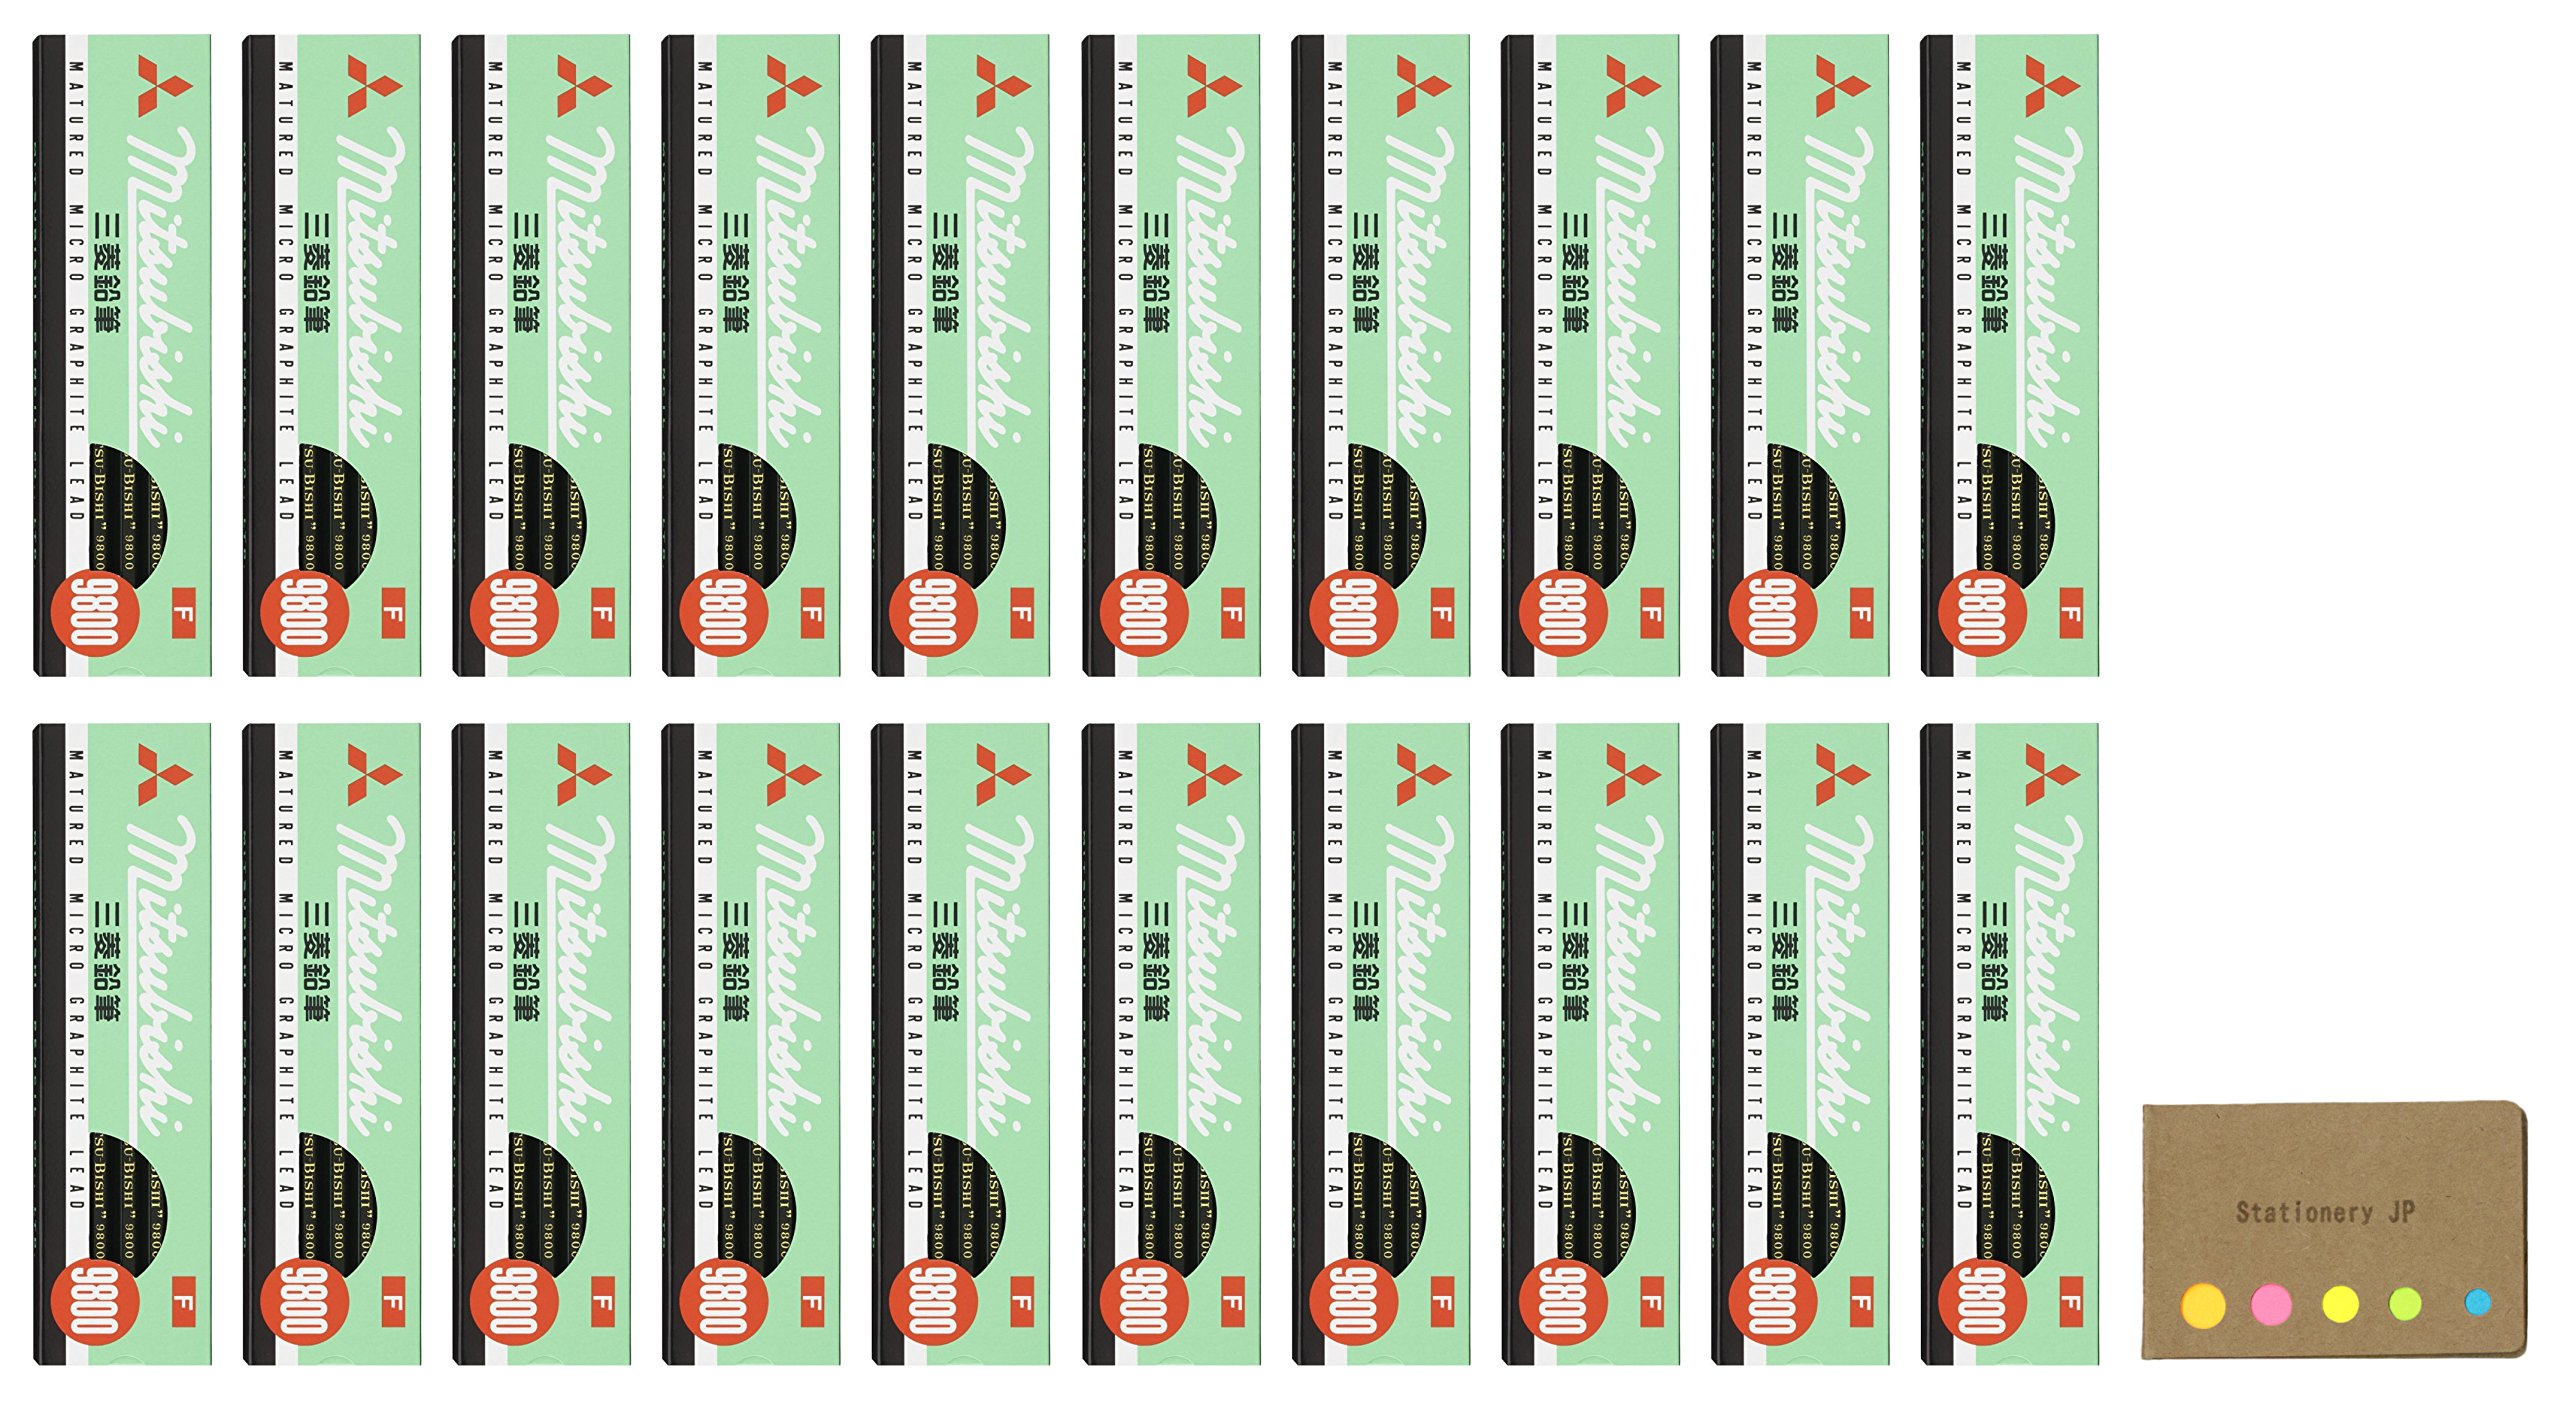 Uni Mitsubishi 9800 Pencil, F, 20-pack/total 240 pcs, Sticky Notes Value Set by Stationery JP (Image #1)